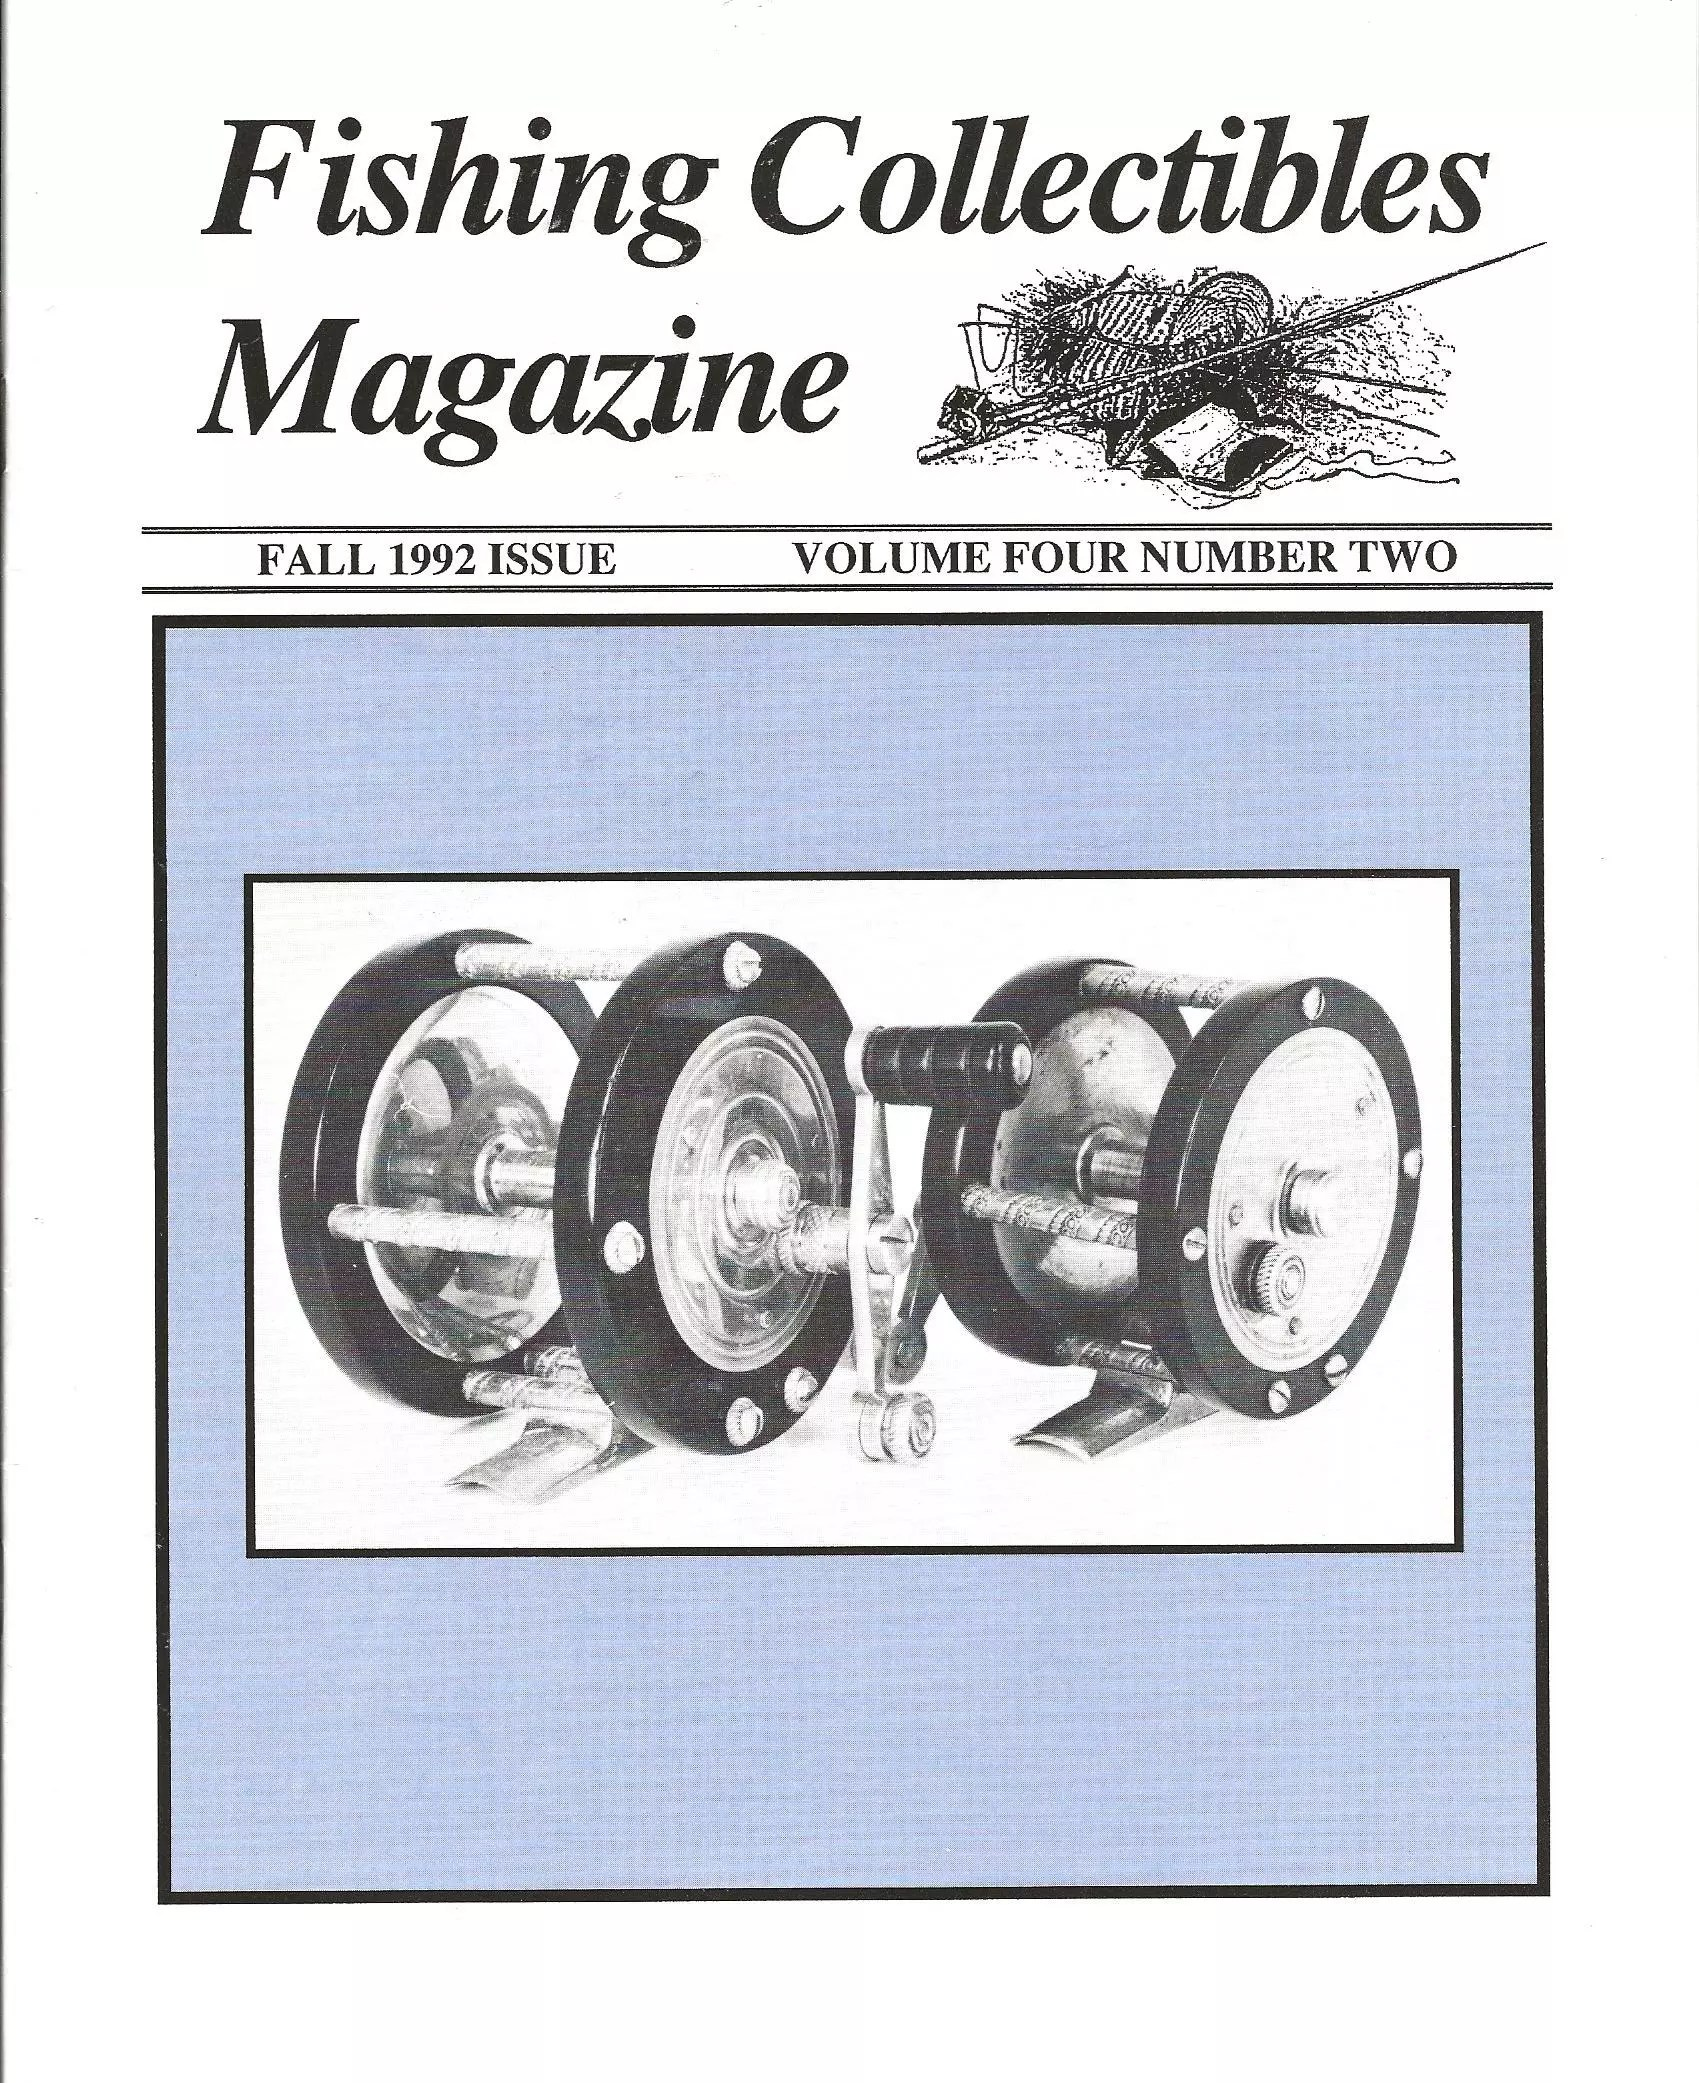 Fishing Collectibles Magazine Cover